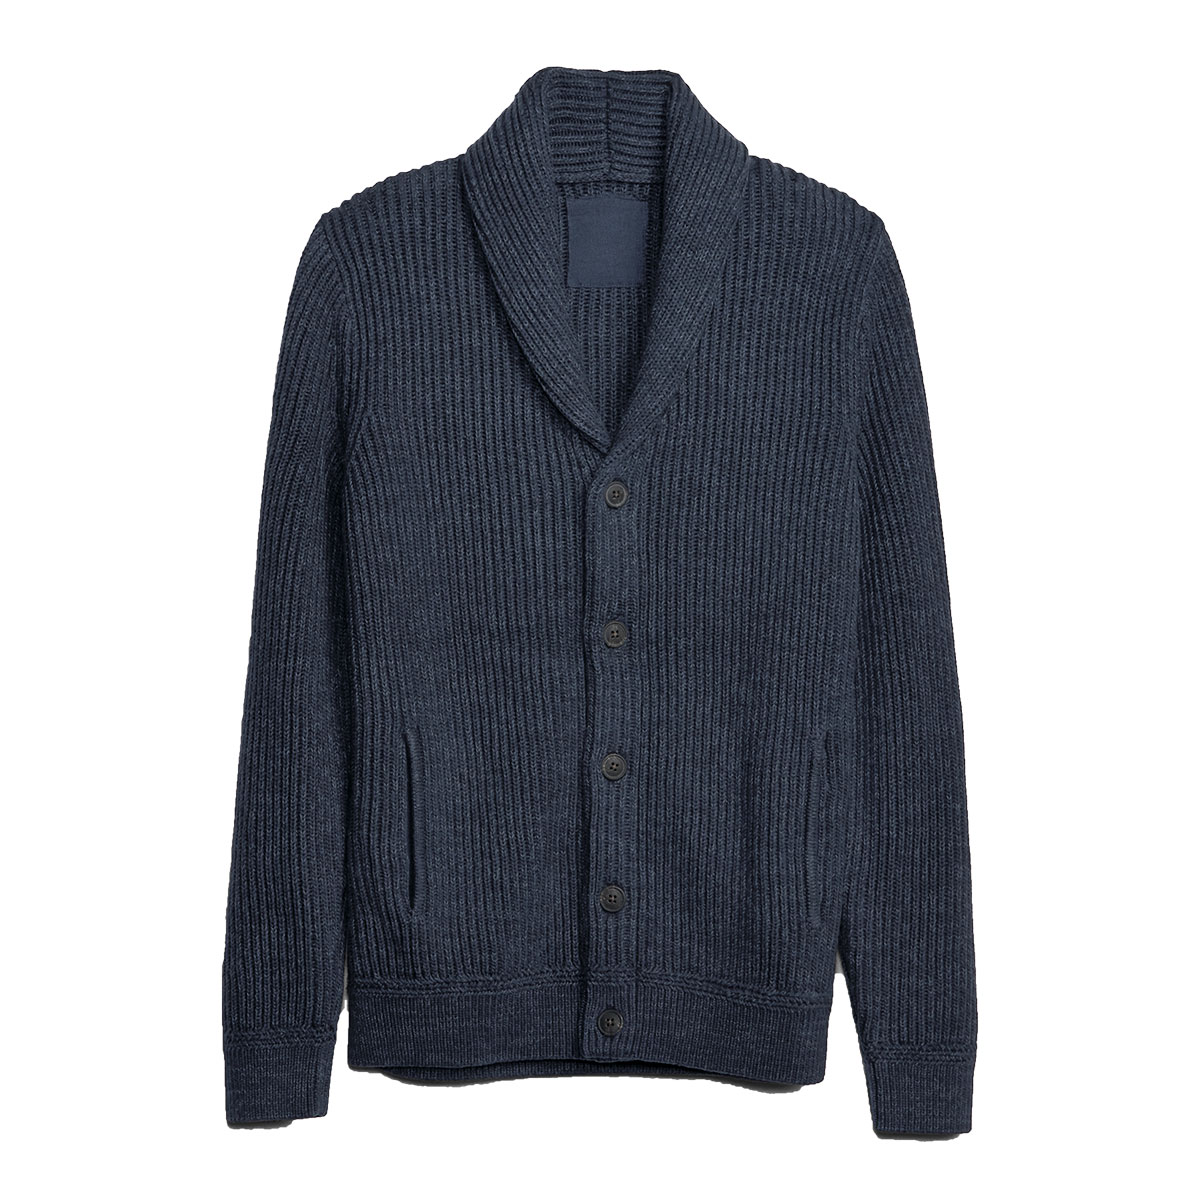 Gap Shaker Stitch Cardigan Sweater